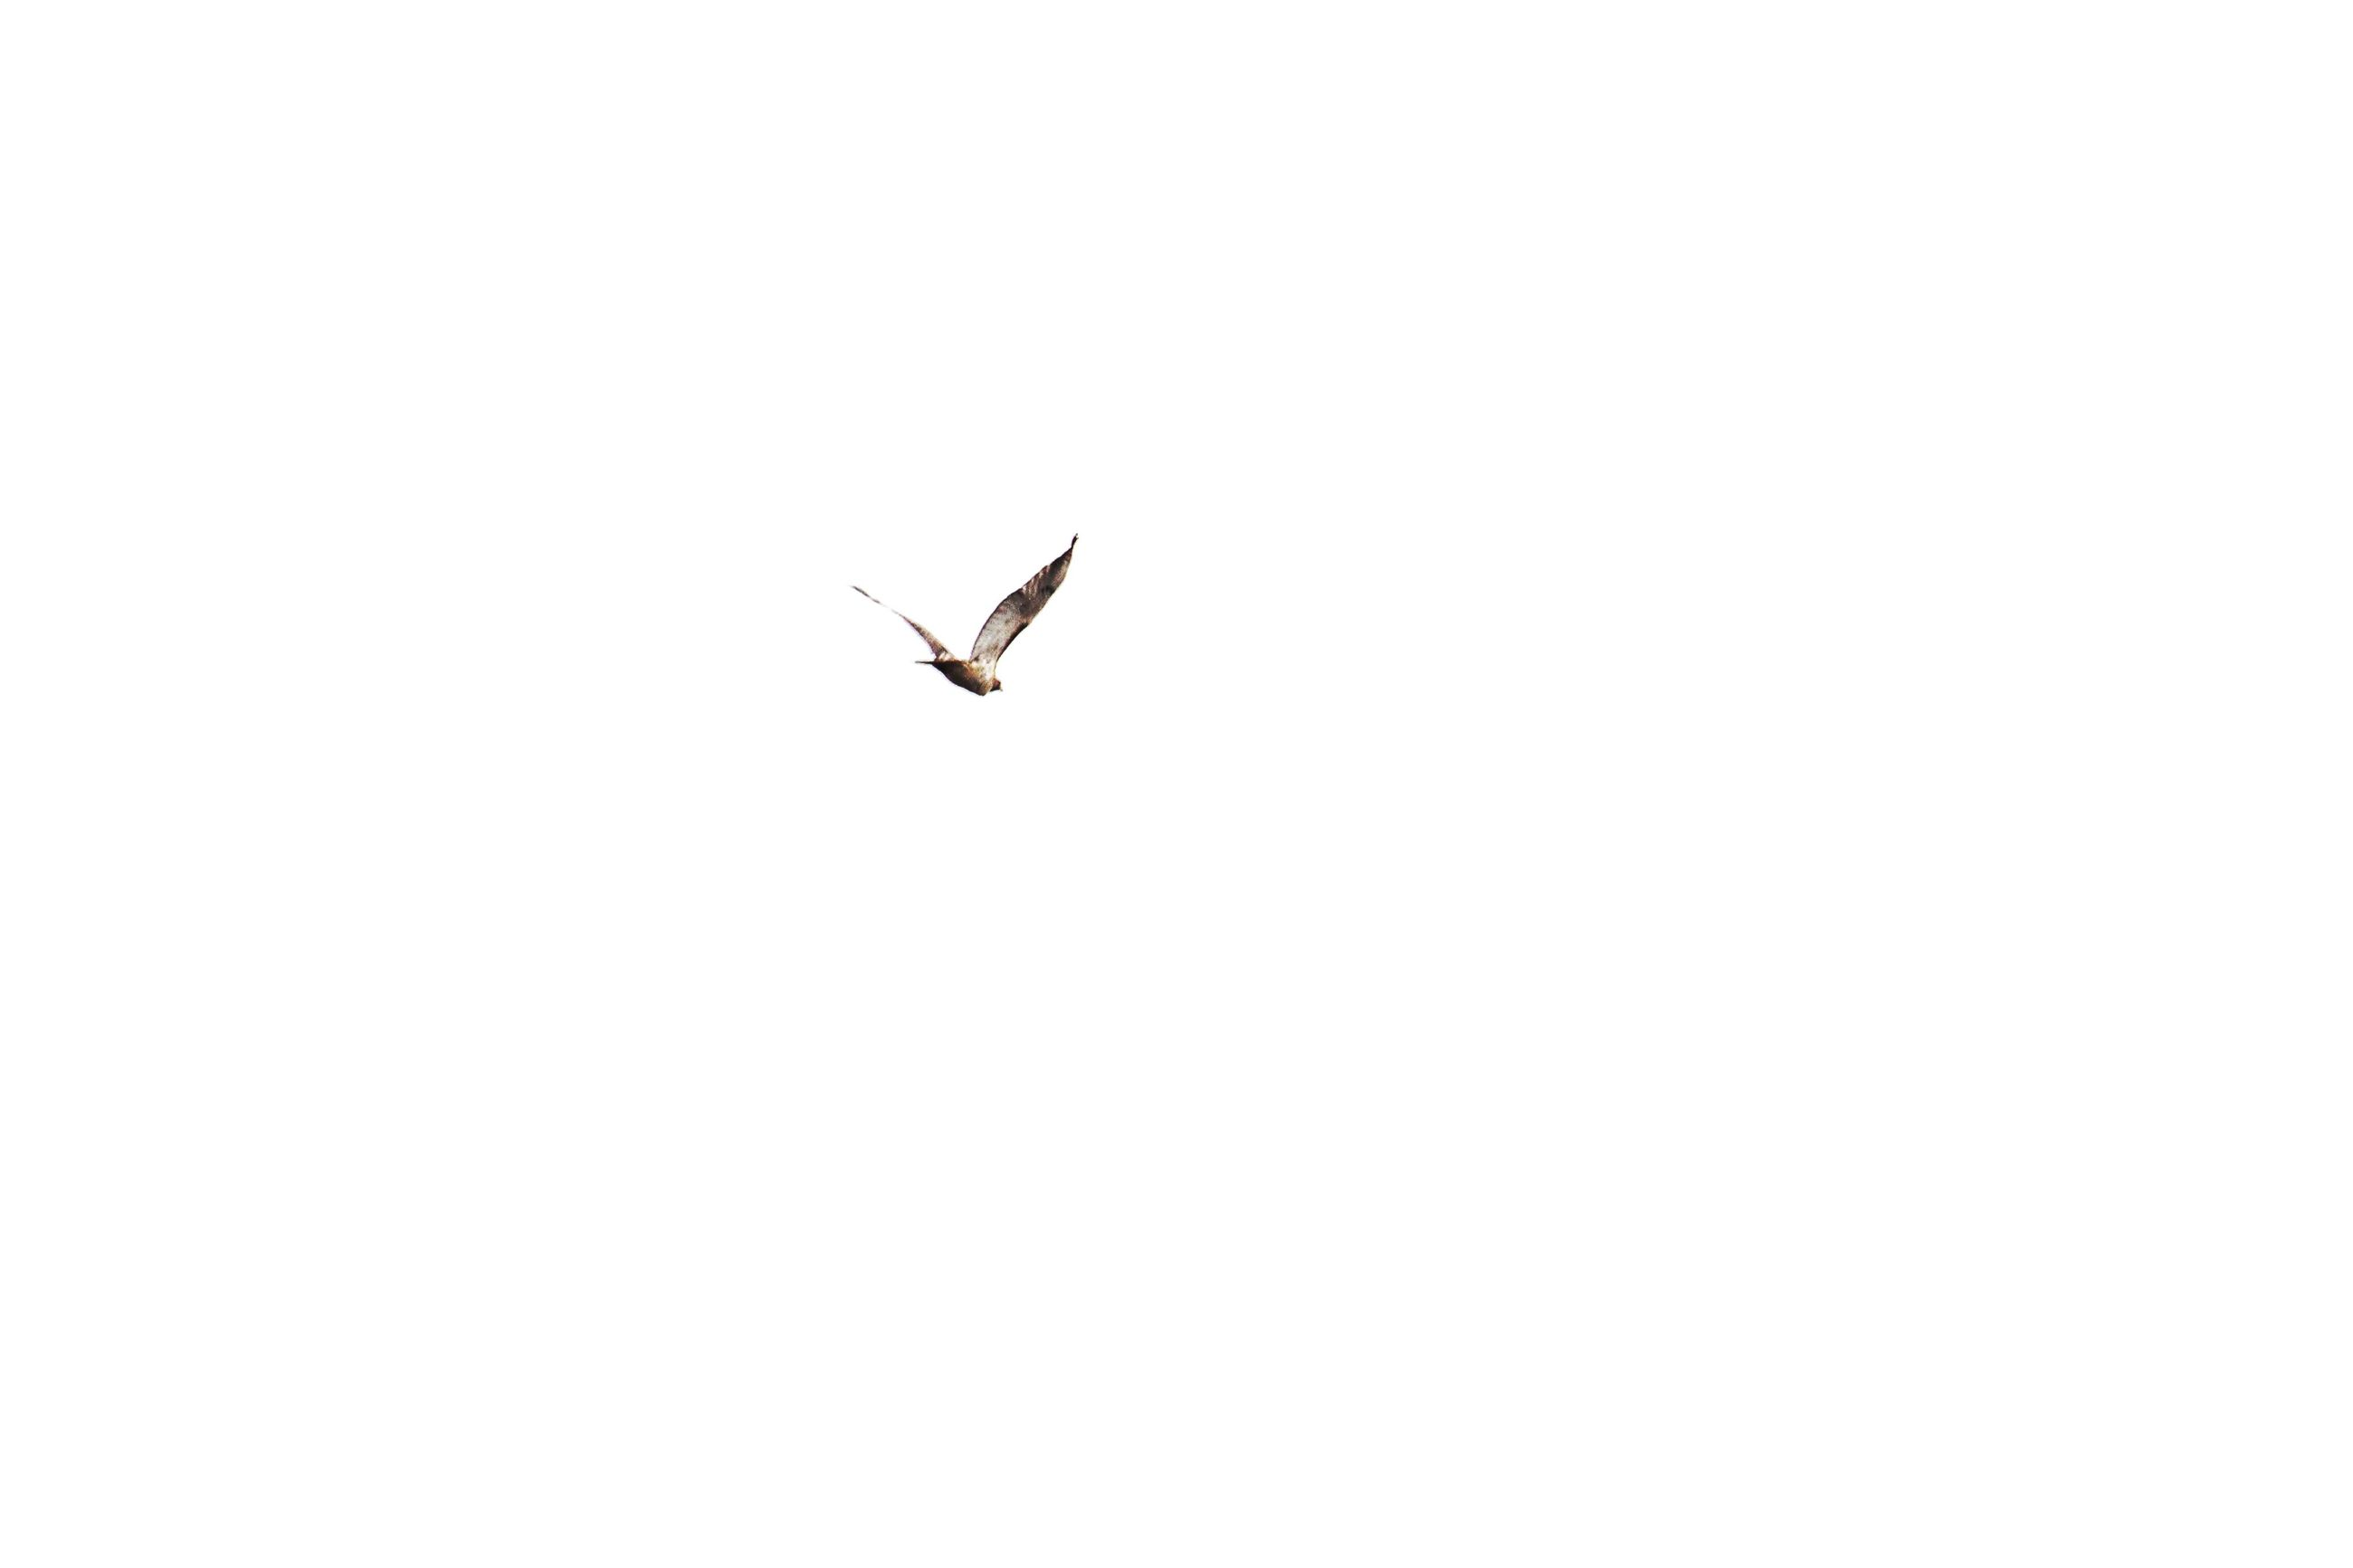 flying, one animal, mid-air, animals in the wild, animal themes, clear sky, spread wings, day, no people, outdoors